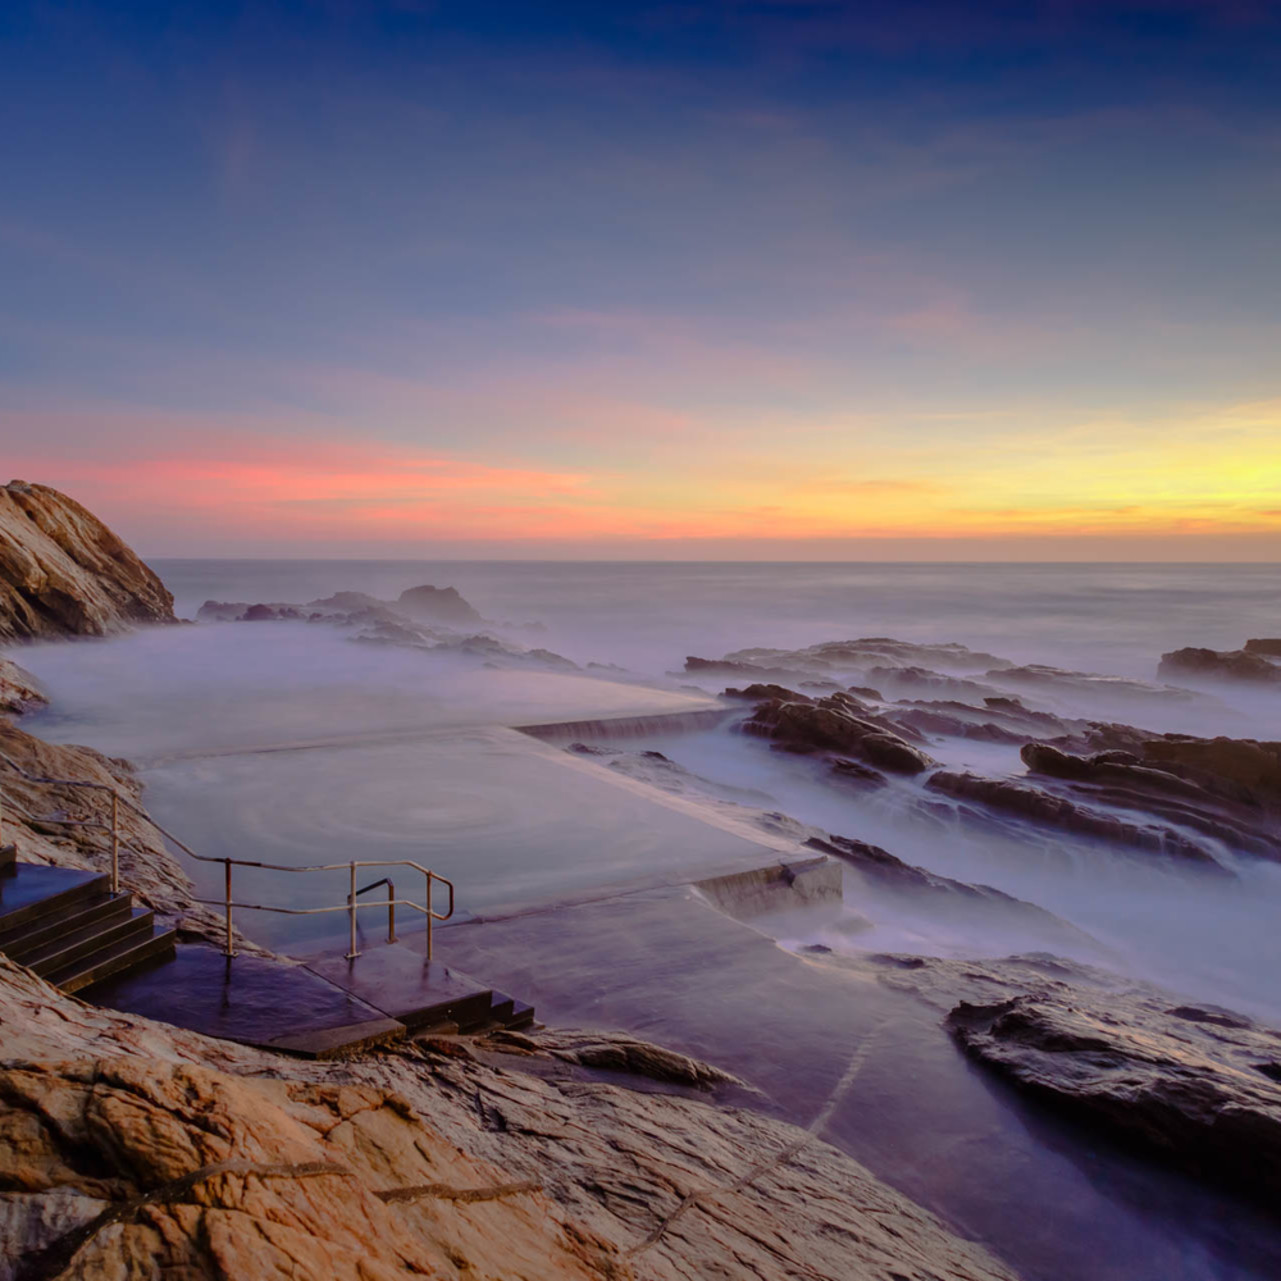 Blue pool sunrise bermagui nsw australia nql2e8